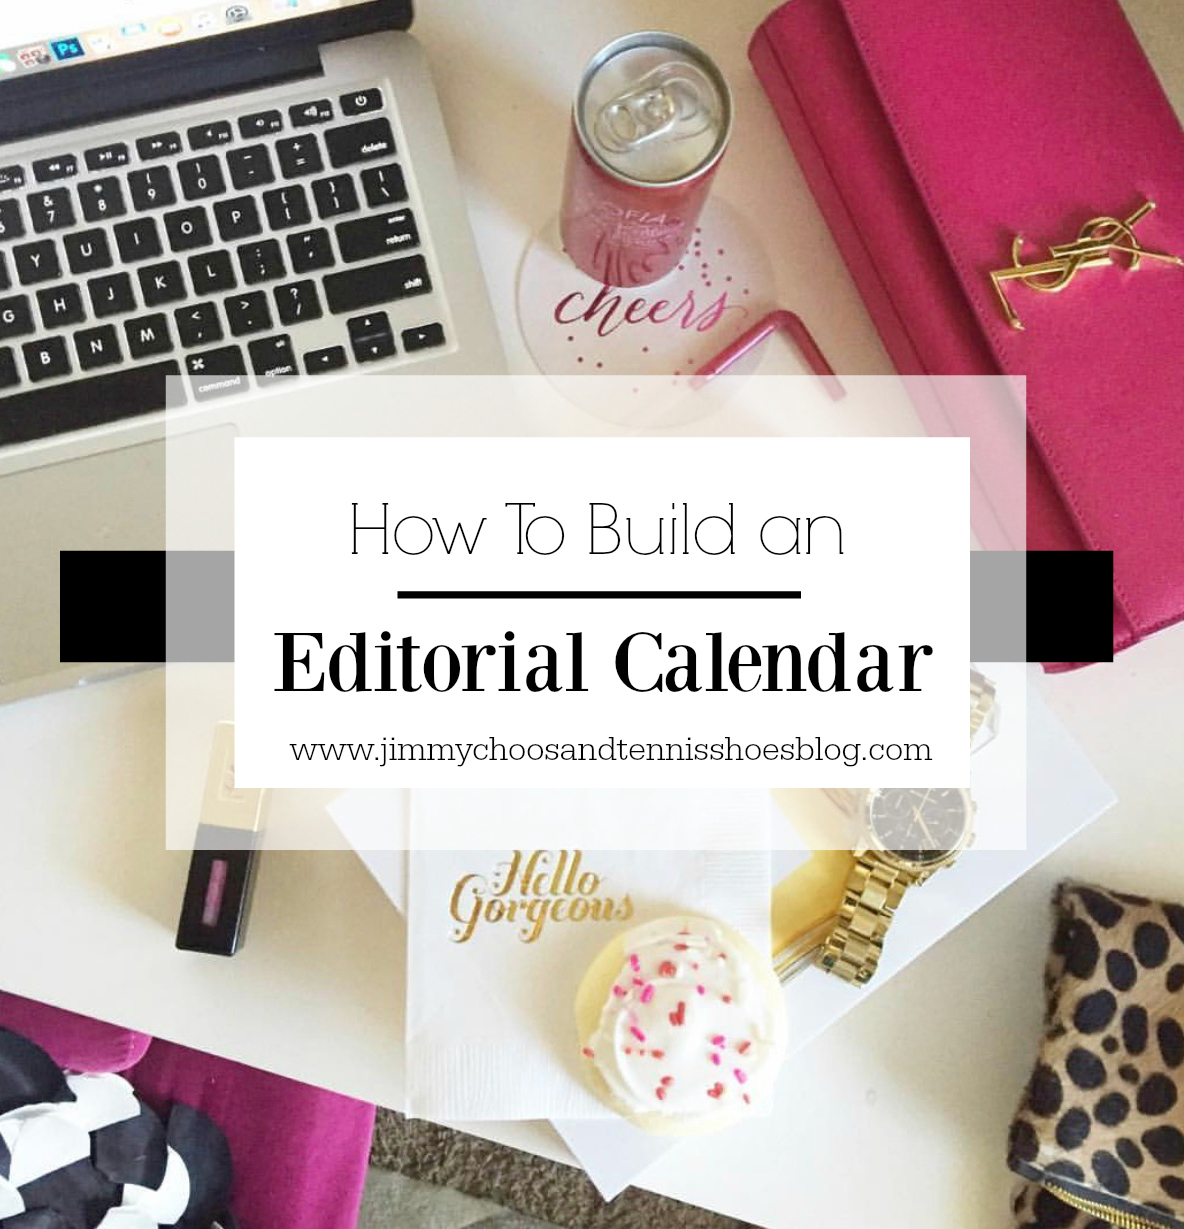 How to Build an Editorial Calendar